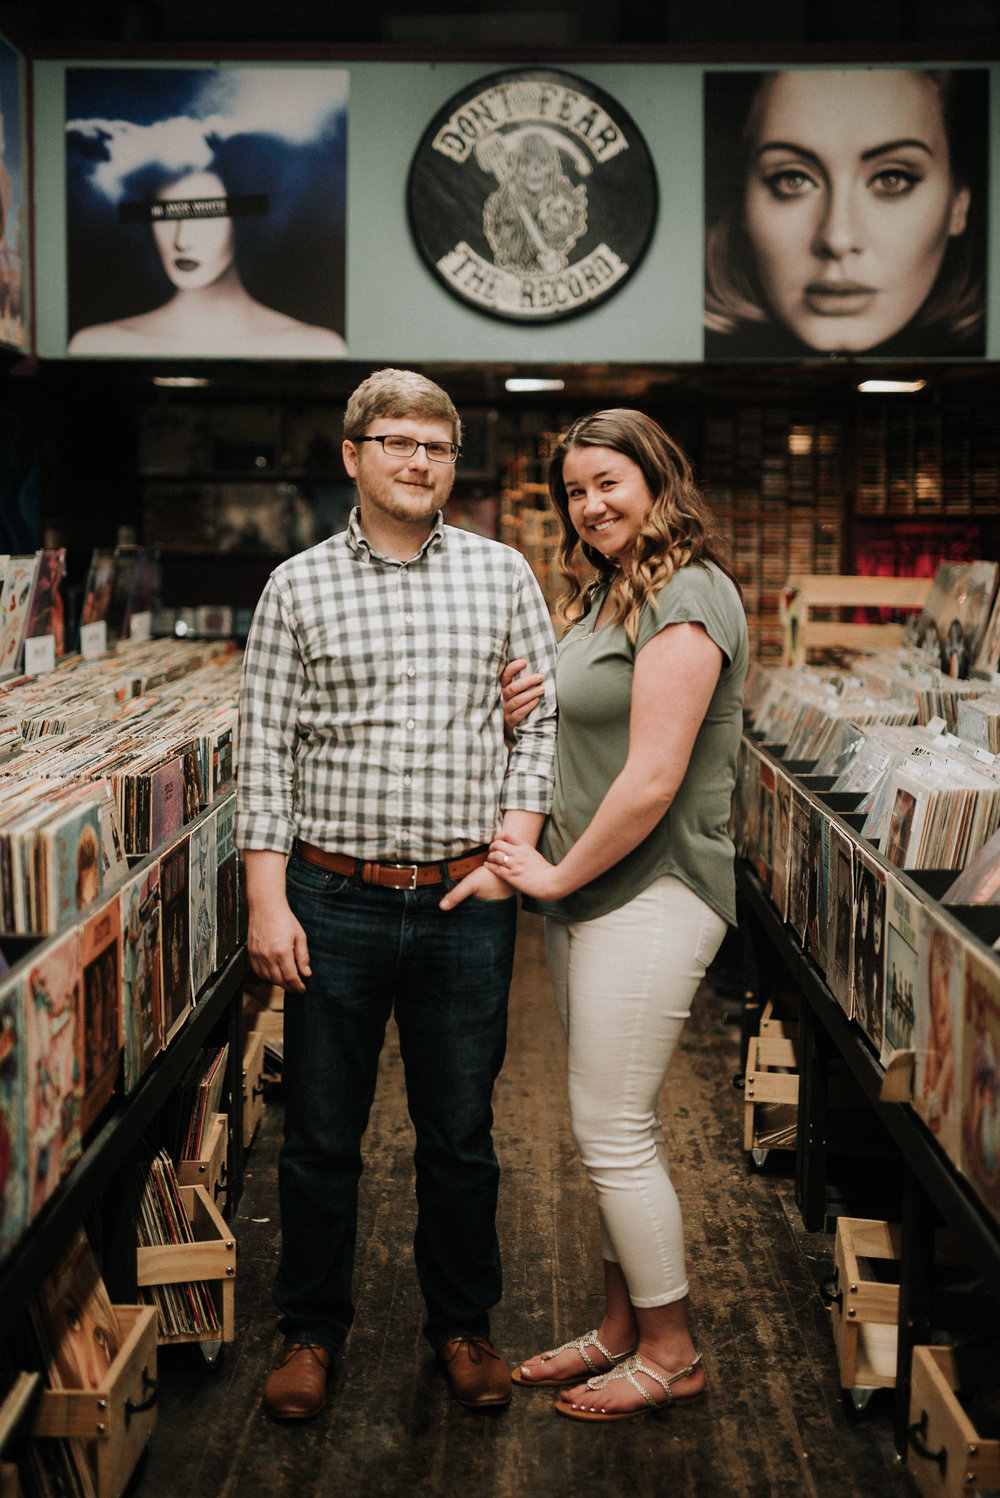 Couple standing in the middle of record store